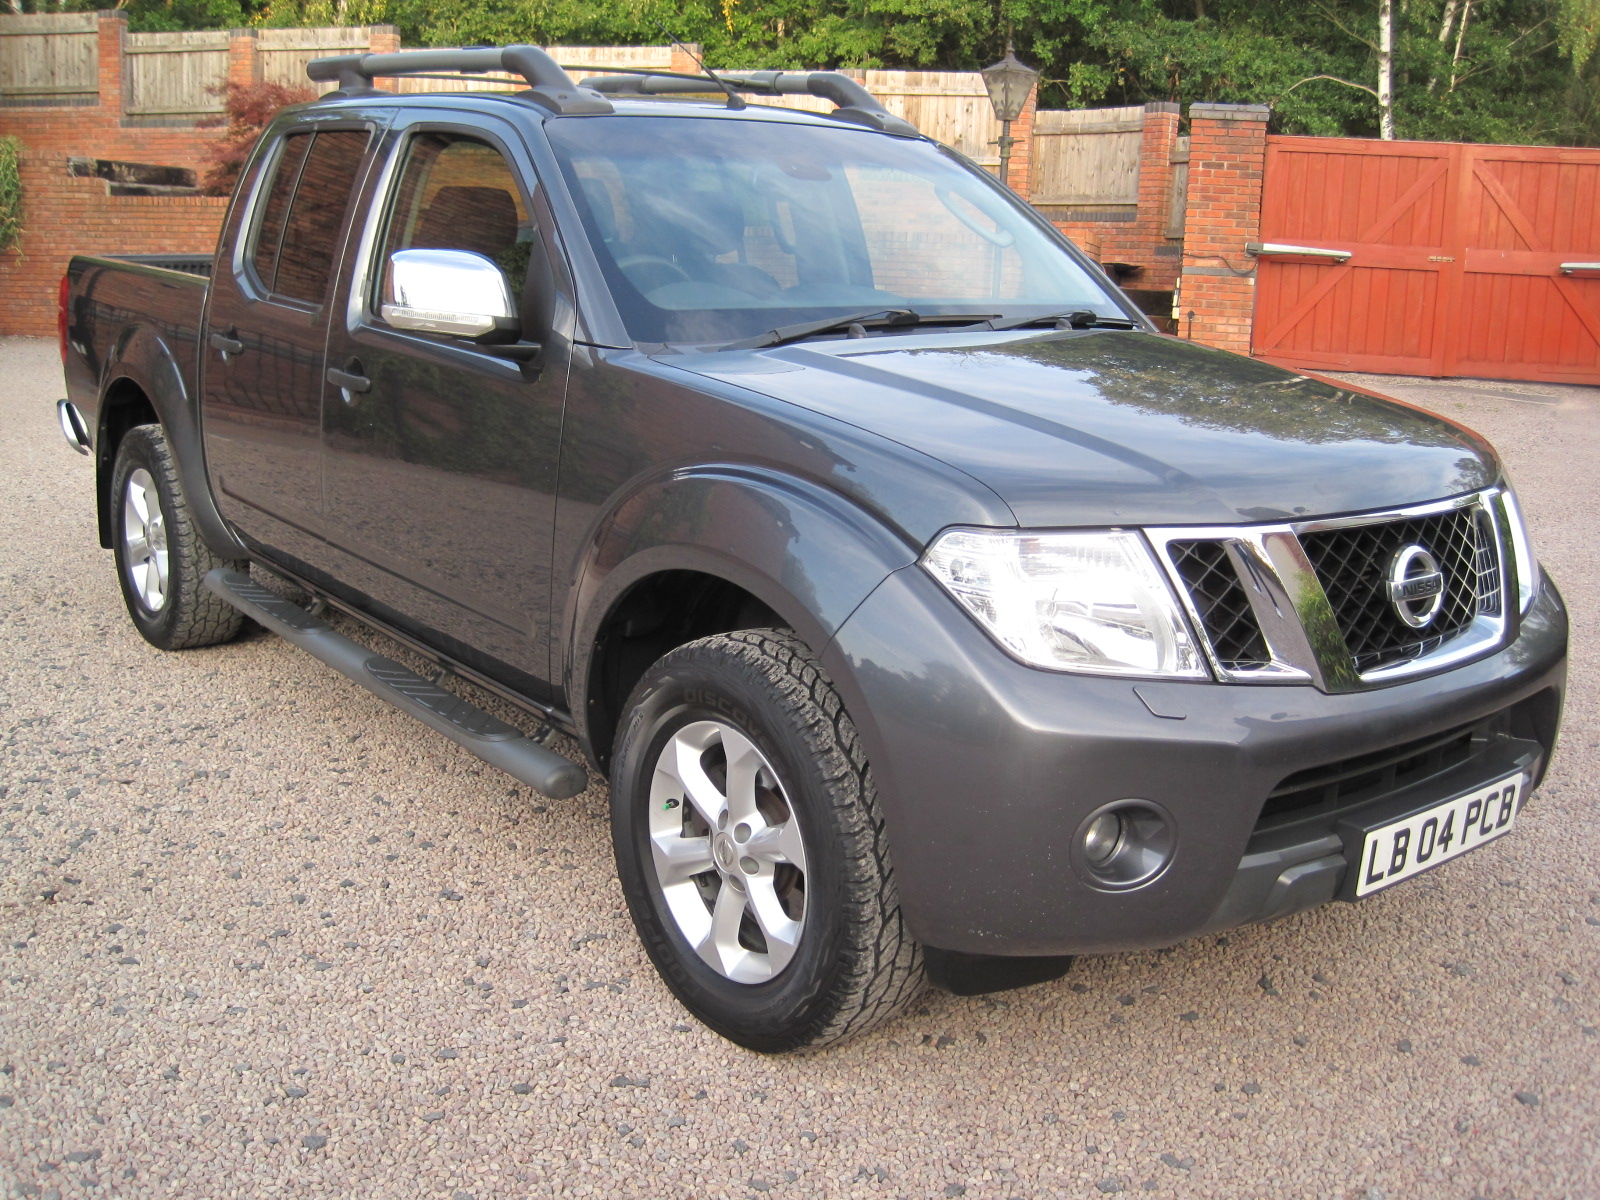 2012 12 Nissan Navara 2.5 dCi Tekna Premium Connect Double Cab Pickup ABSOLUTELY PRISTINE THROUGHOUT! NO VAT!